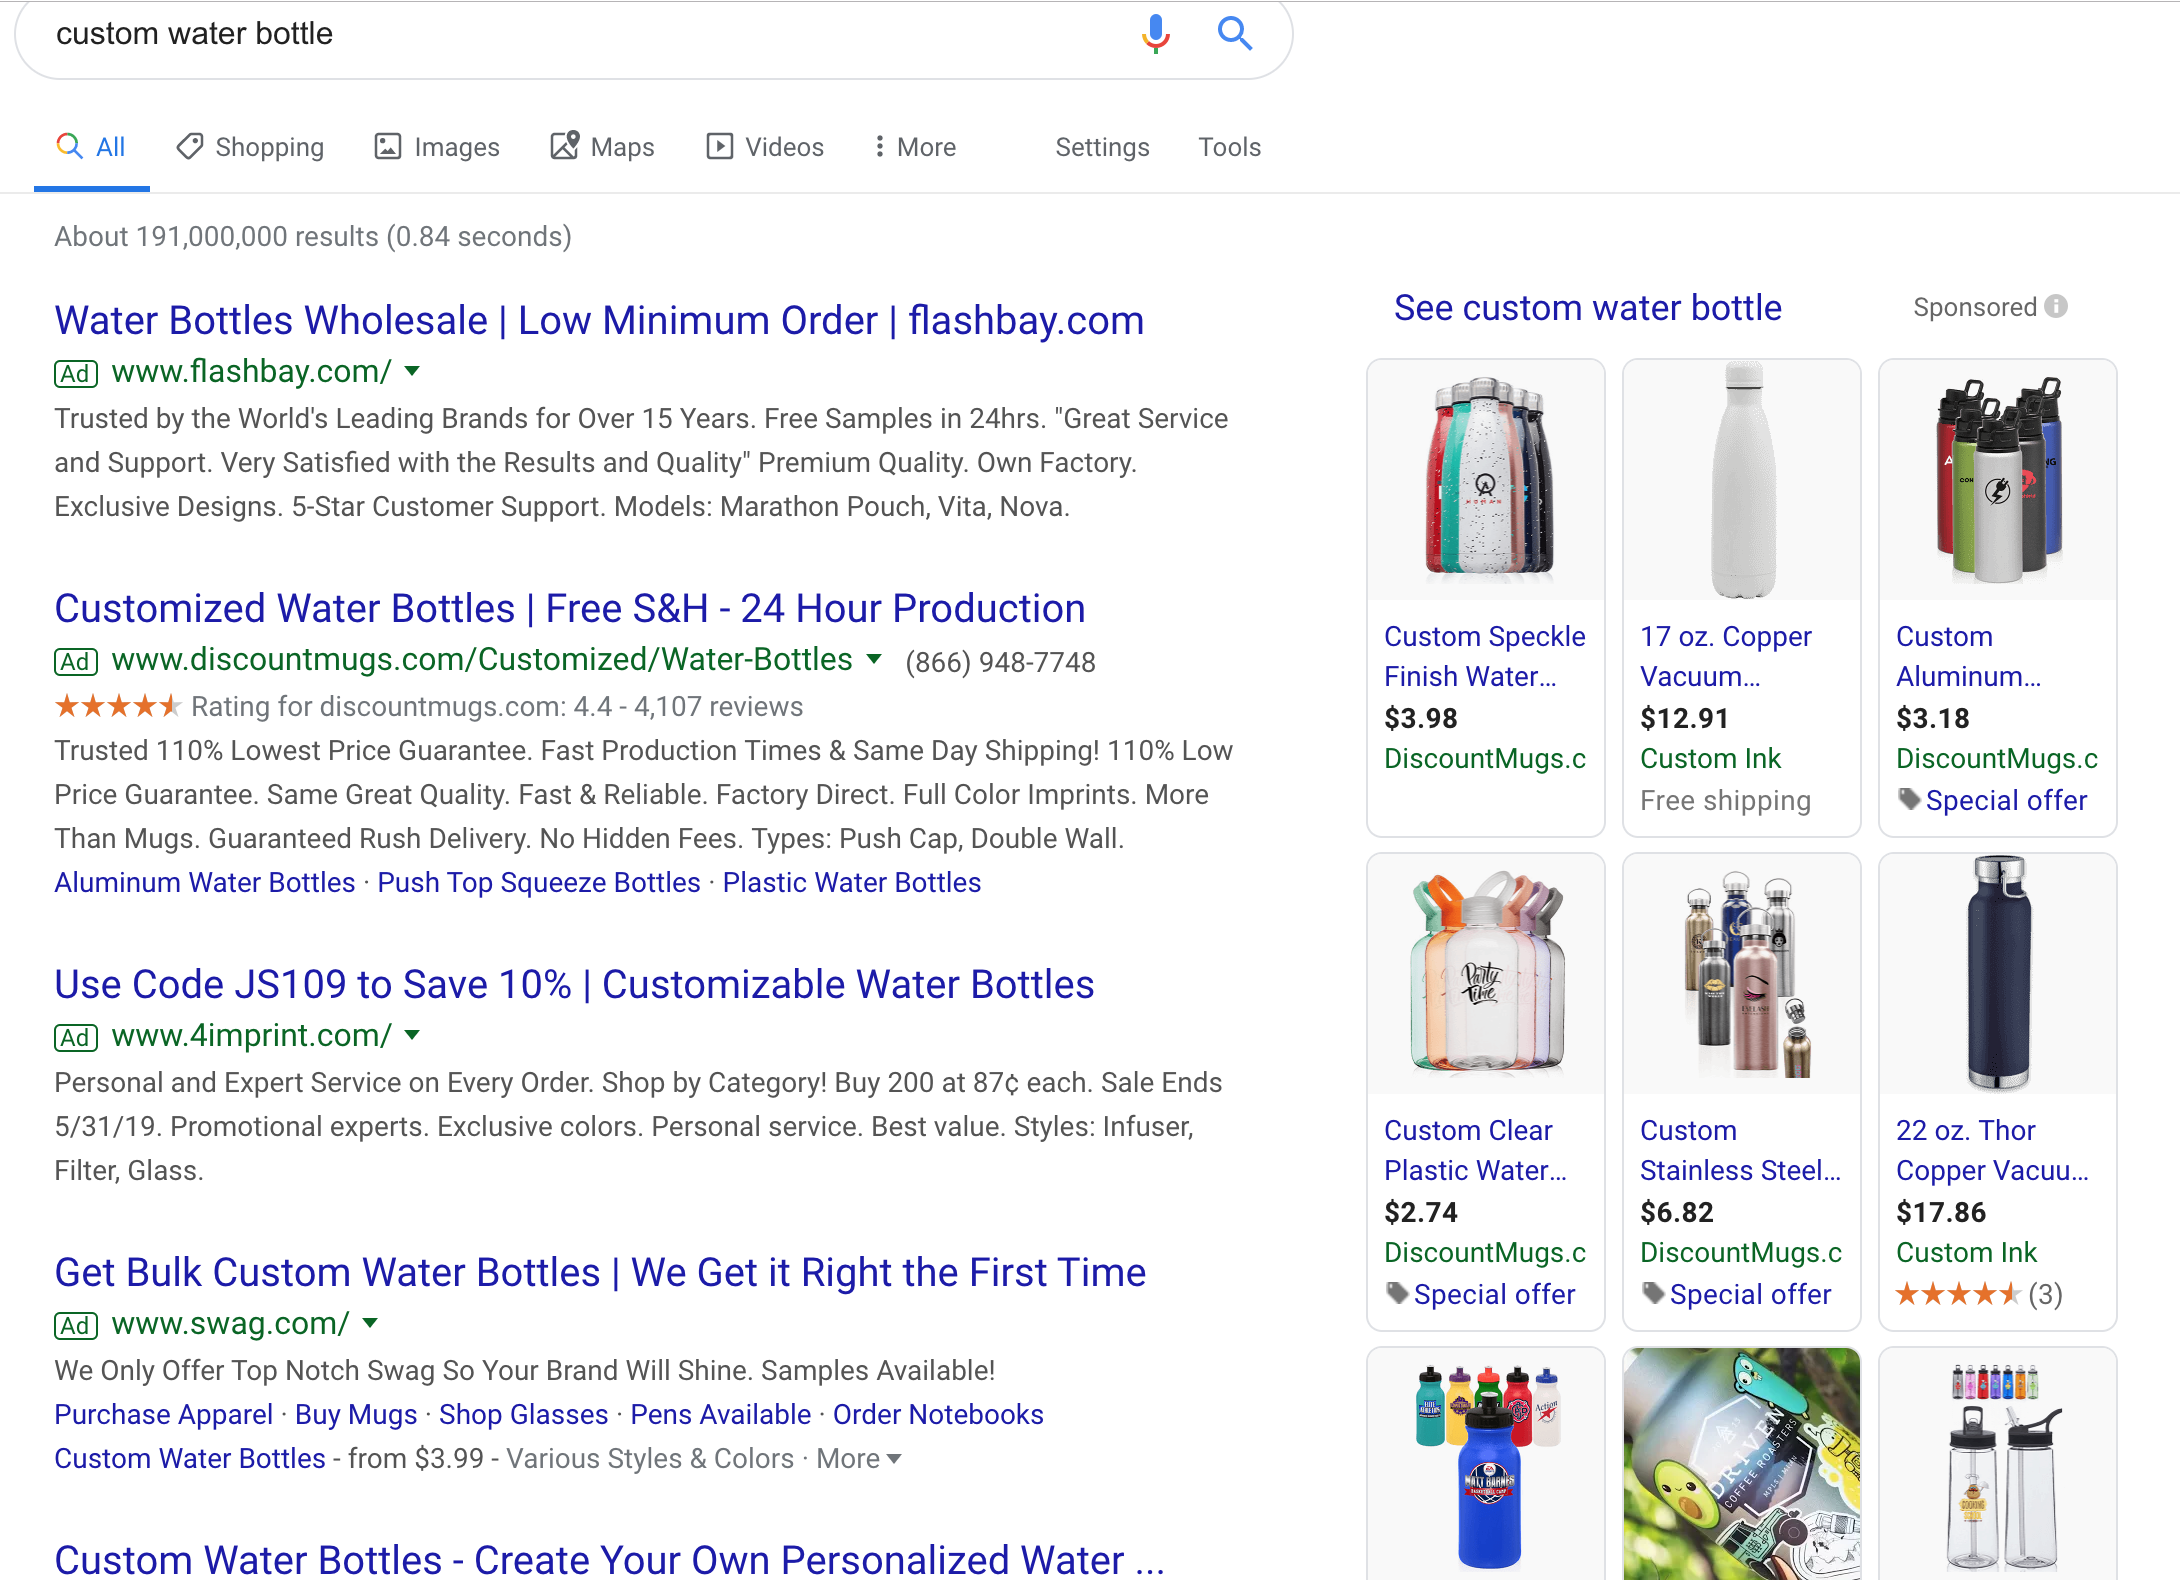 Google's list of the result searching for custom water bottle